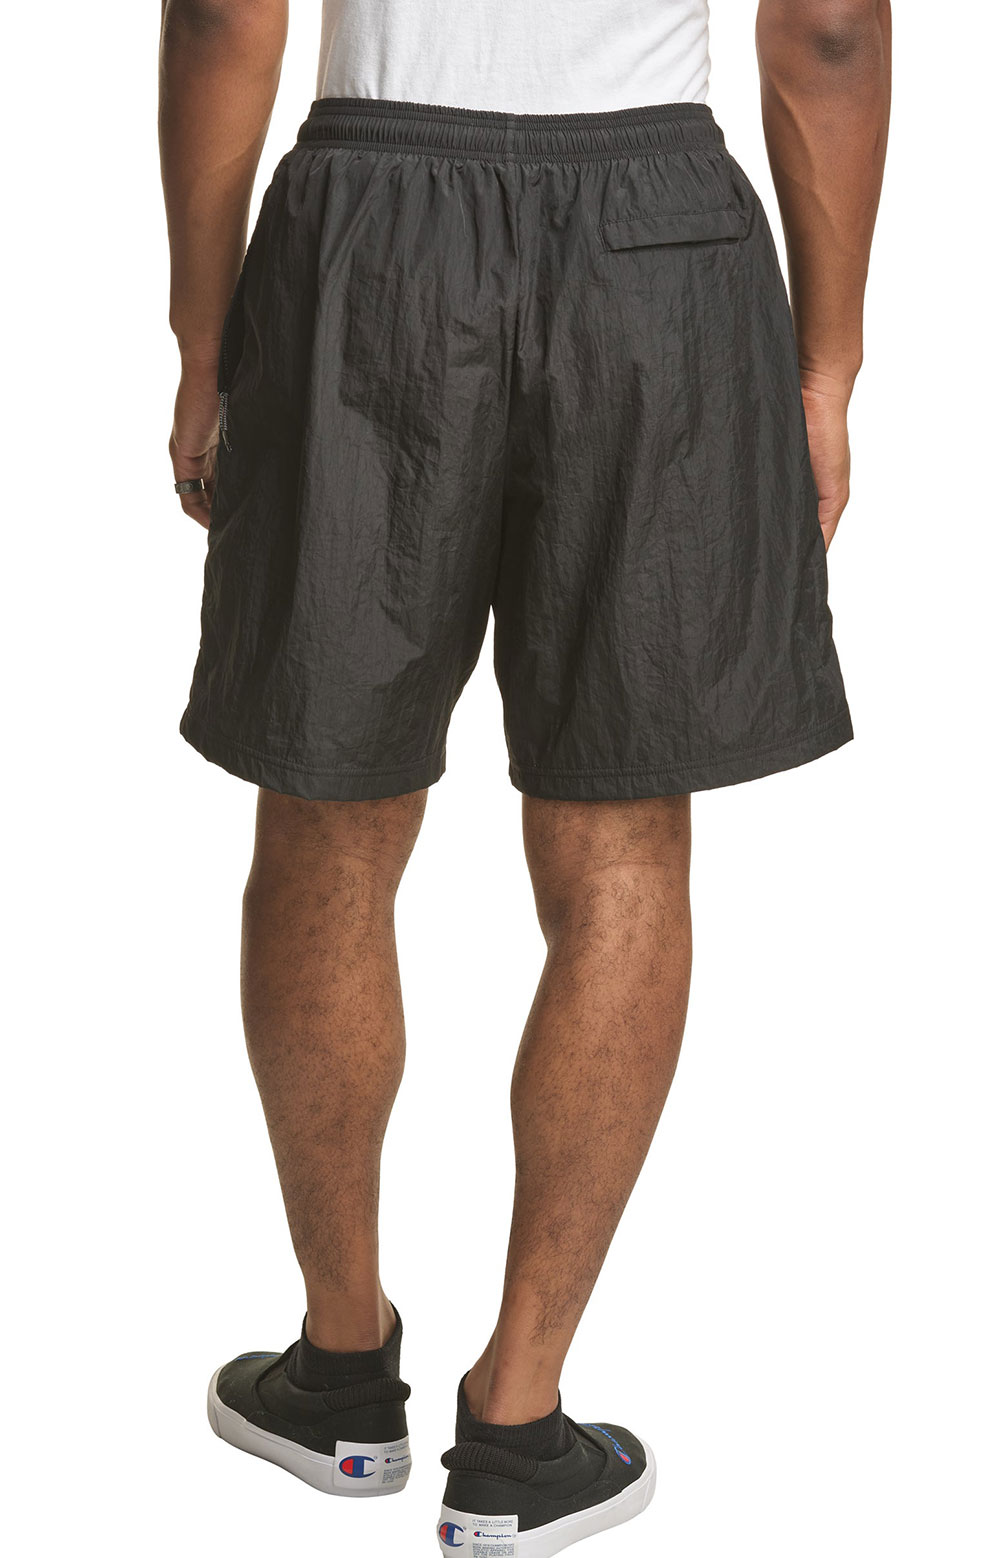 6-Inch Nylon Warm Up Shorts - Black 2